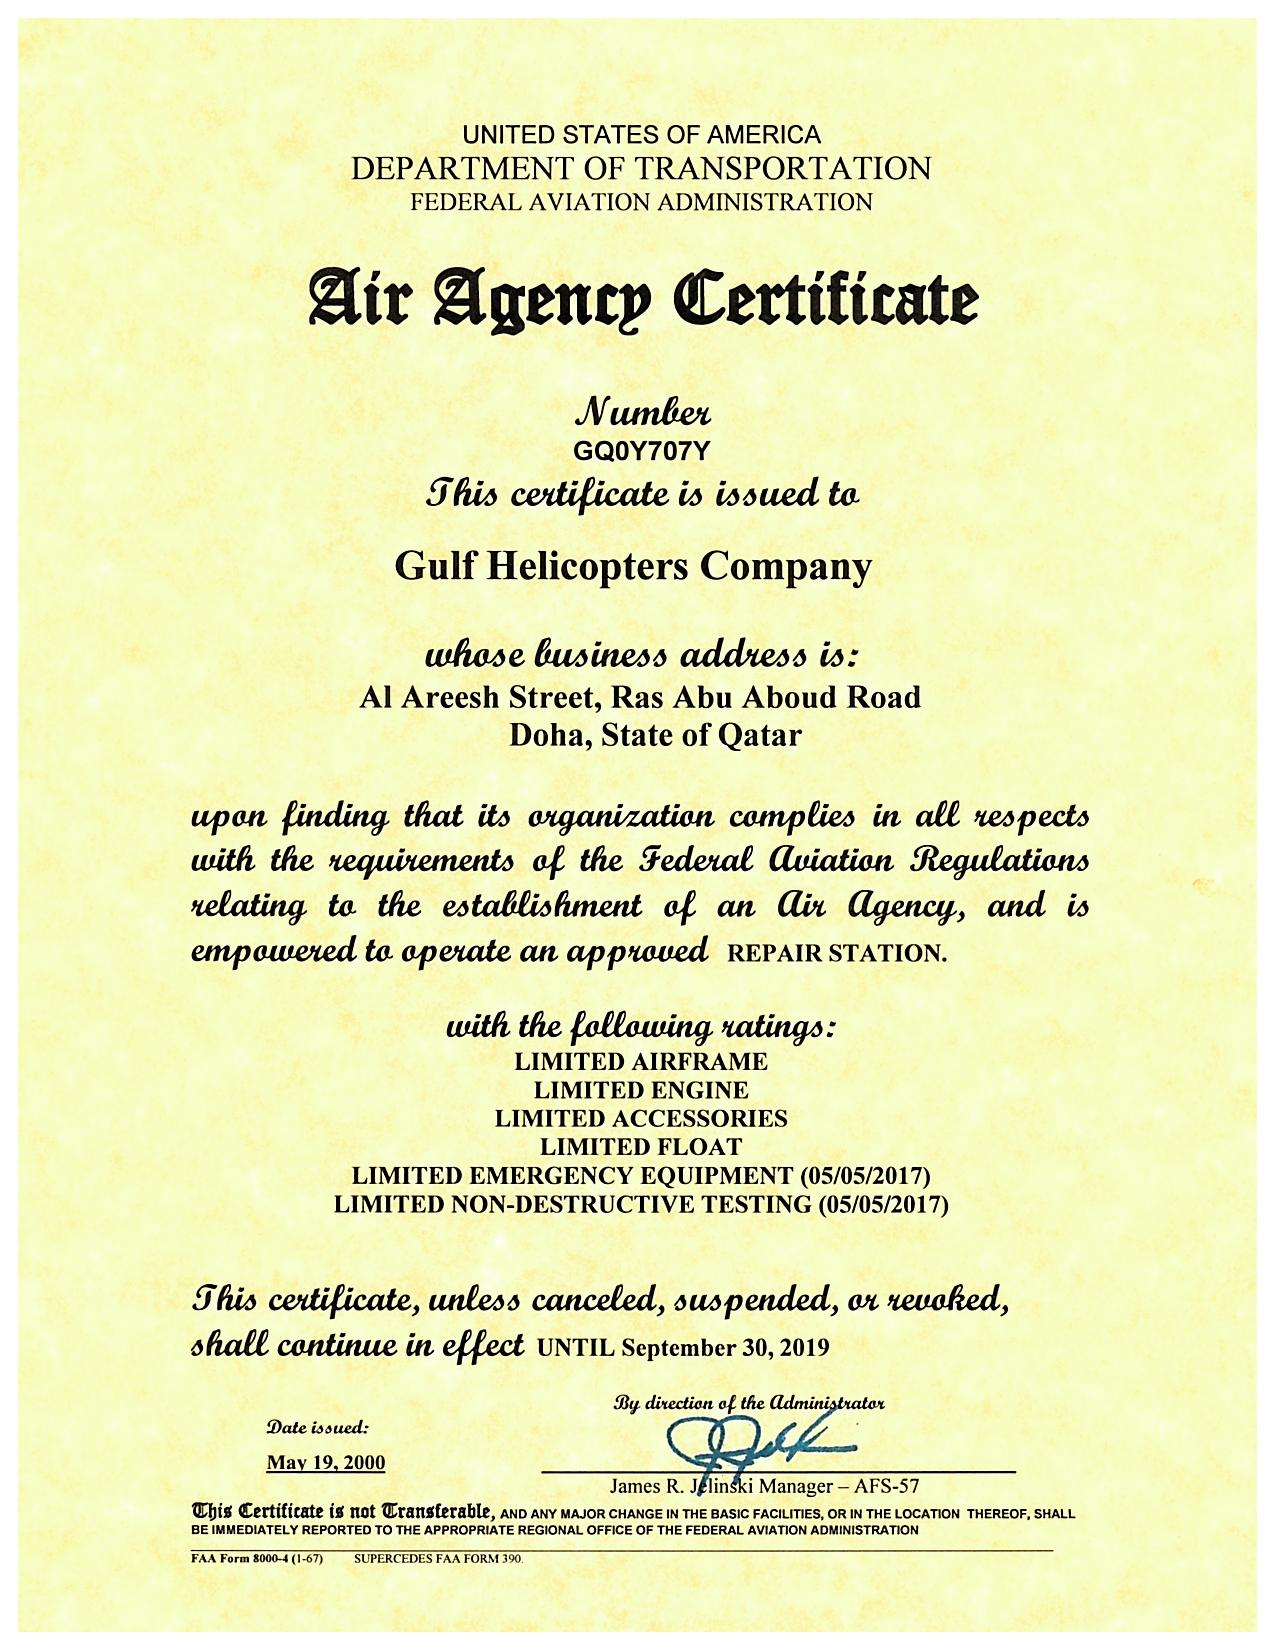 Awards Certifications Gulf Helicopters